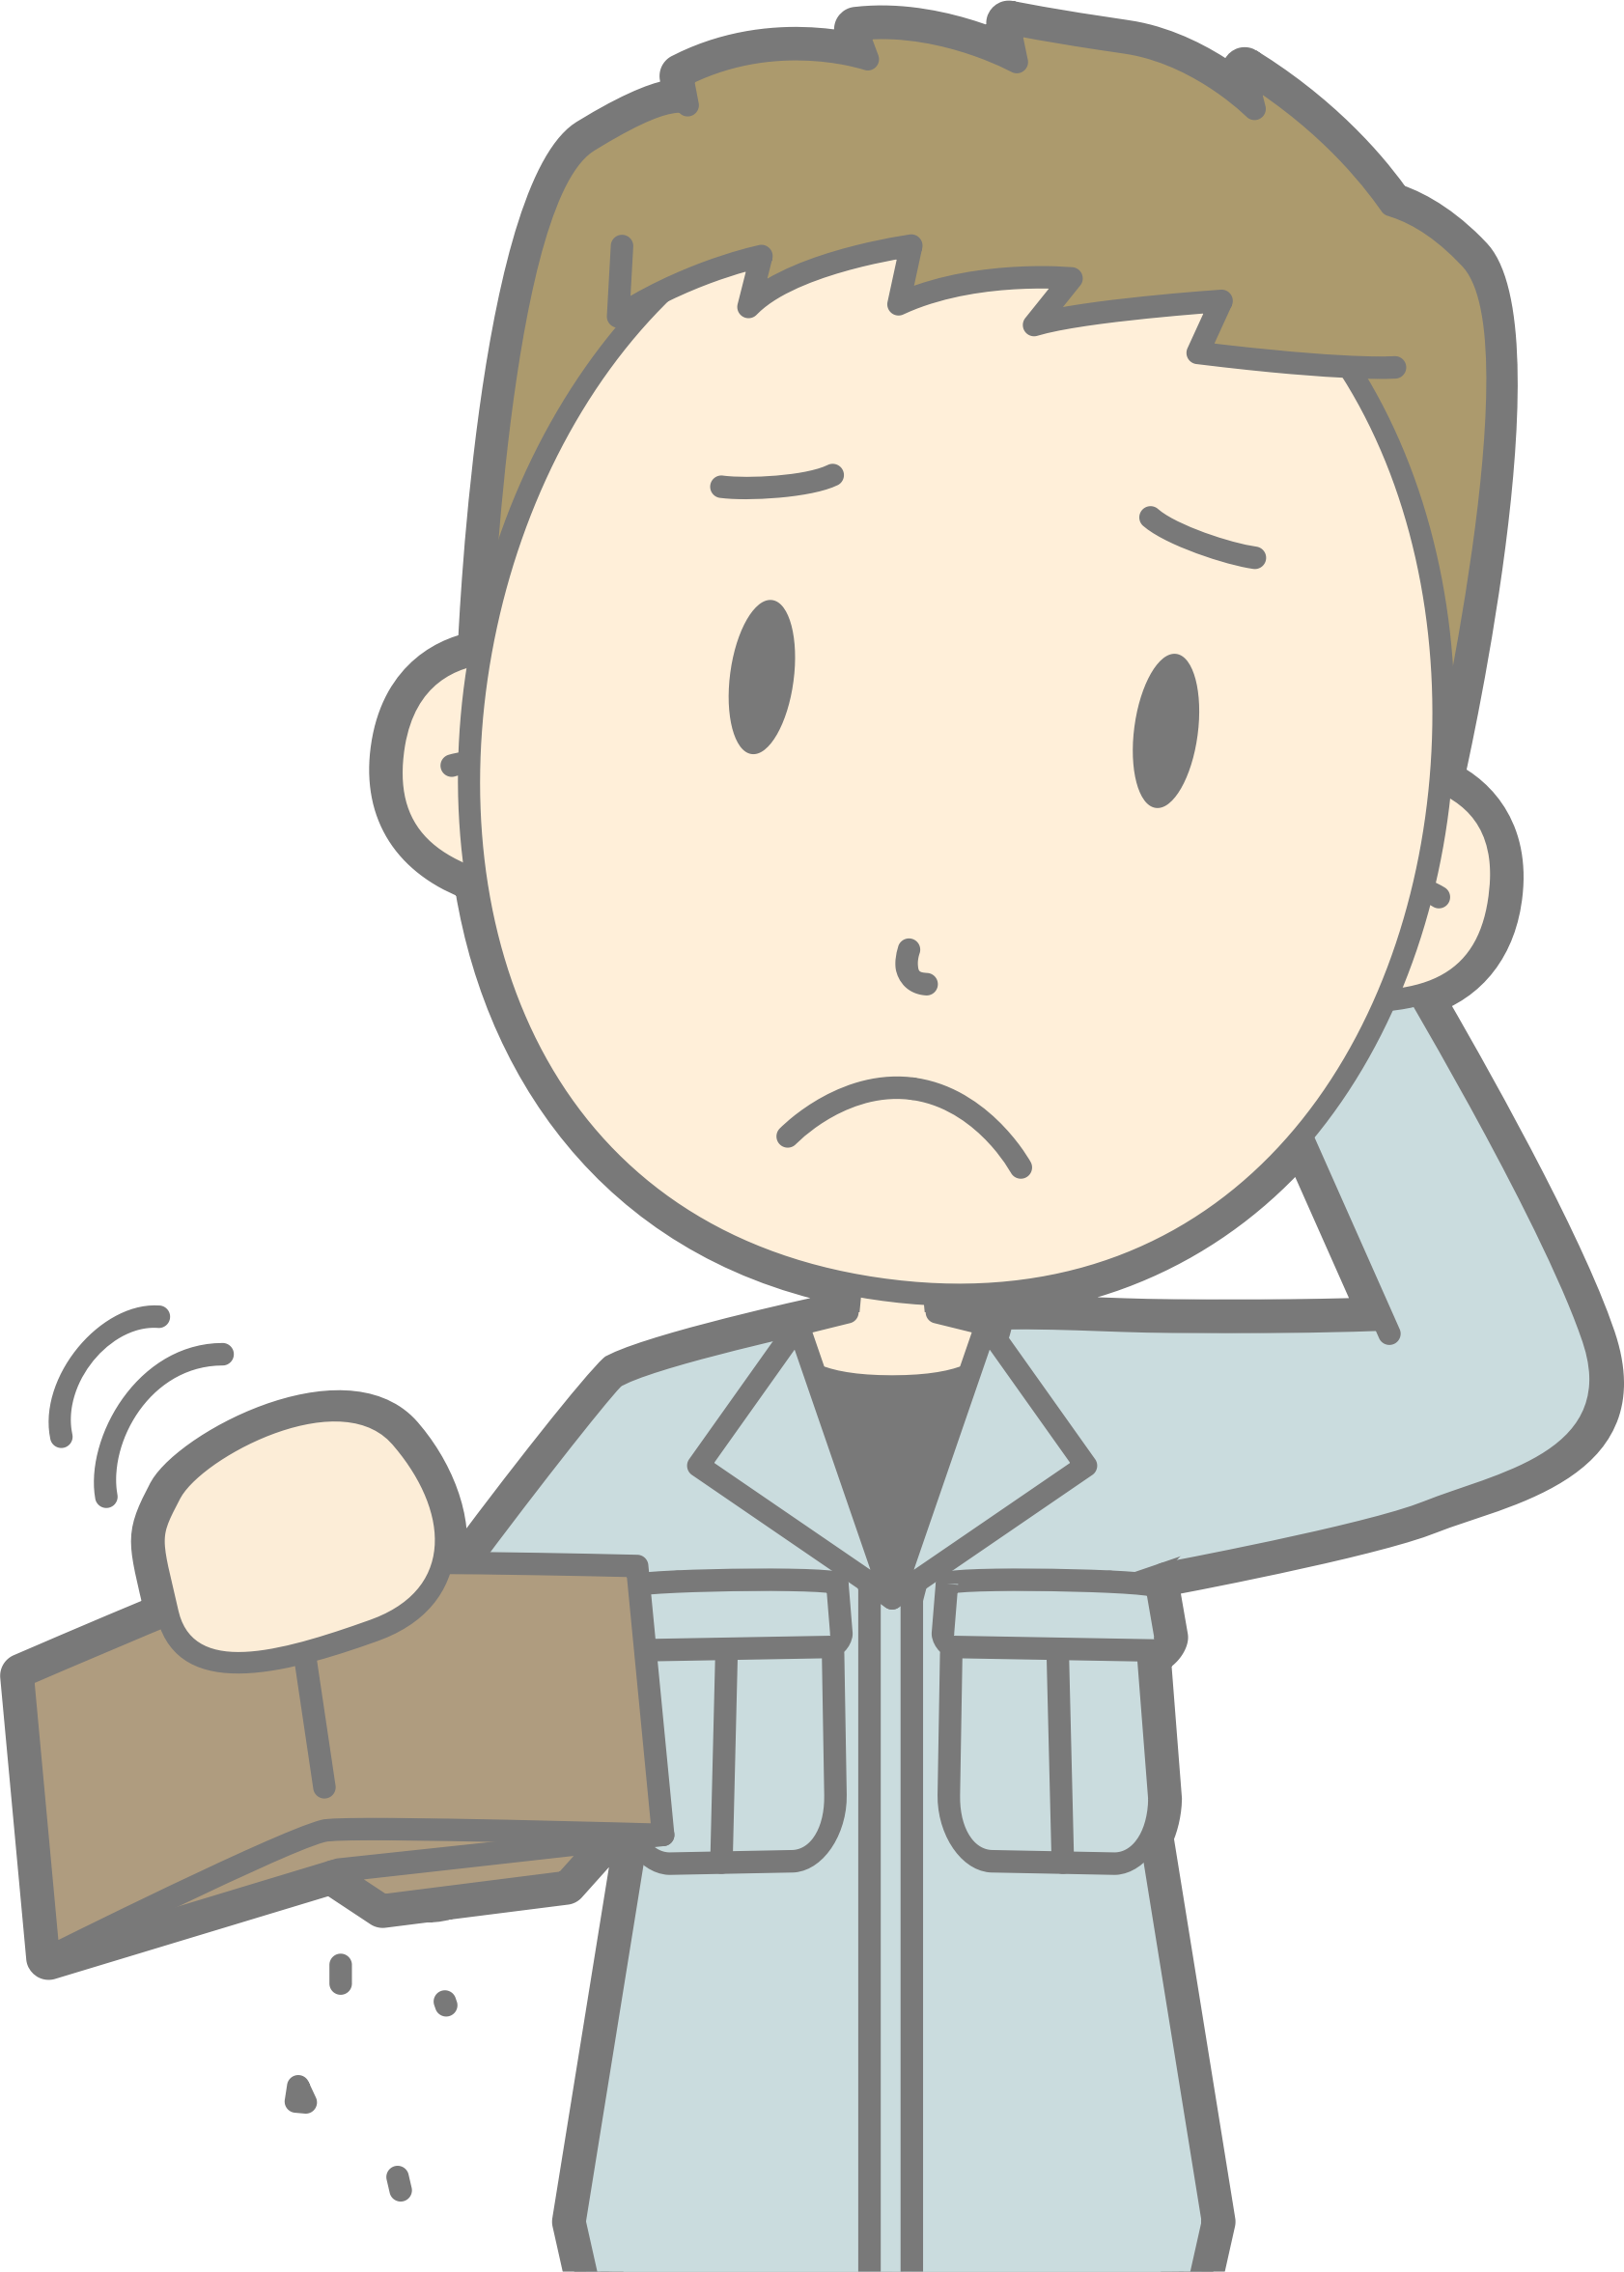 Poor clipart. Male big image png